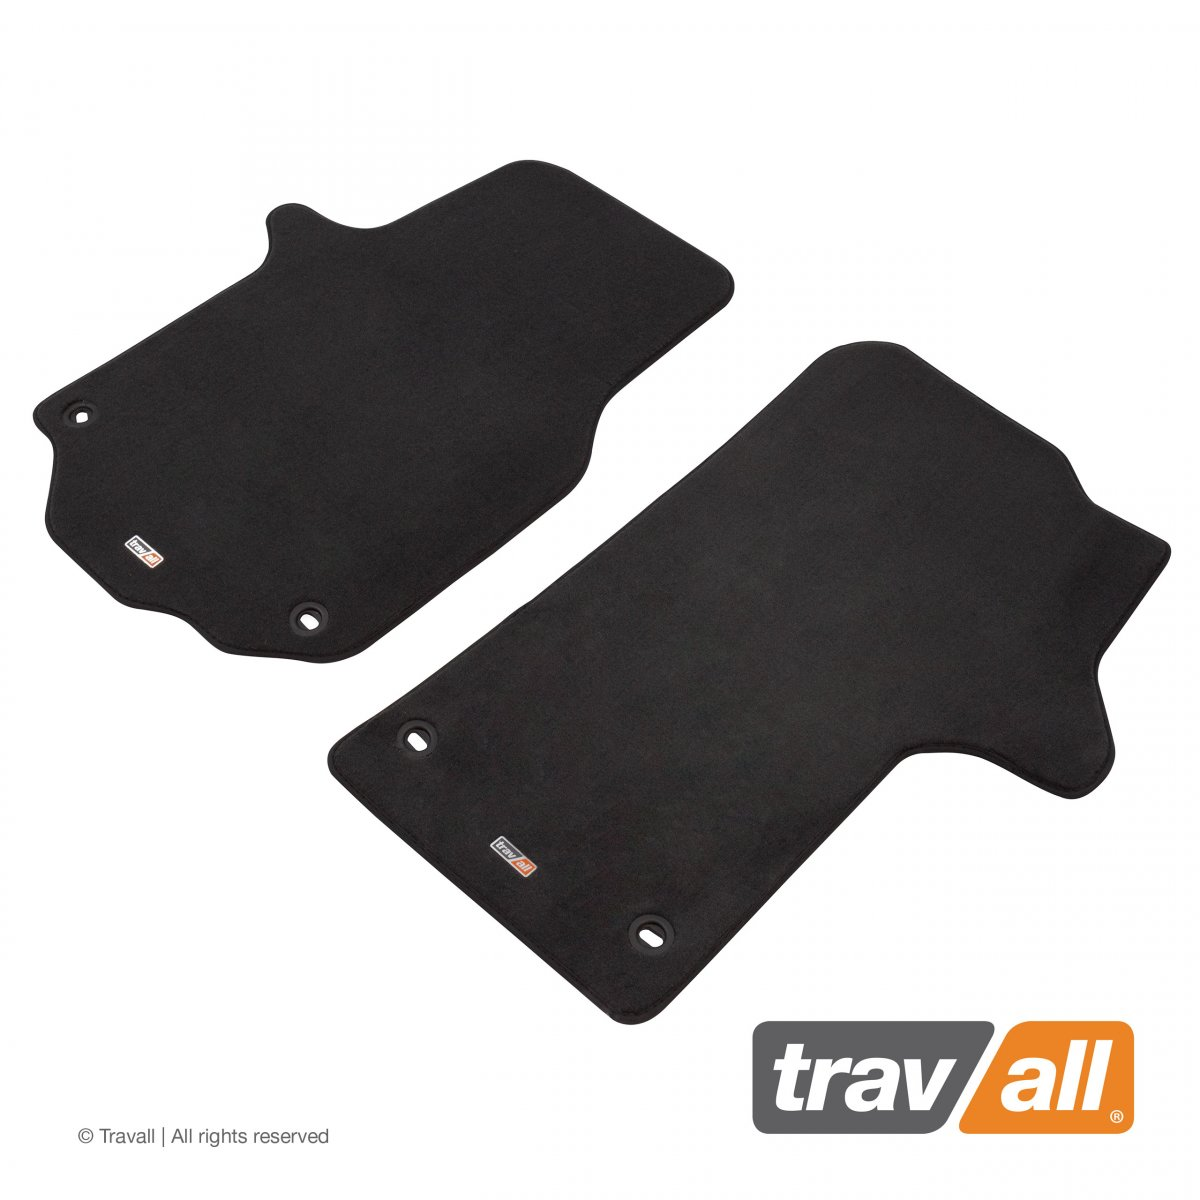 Travall® MATS [LHD] for Volkswagen Crafter (2017 - )